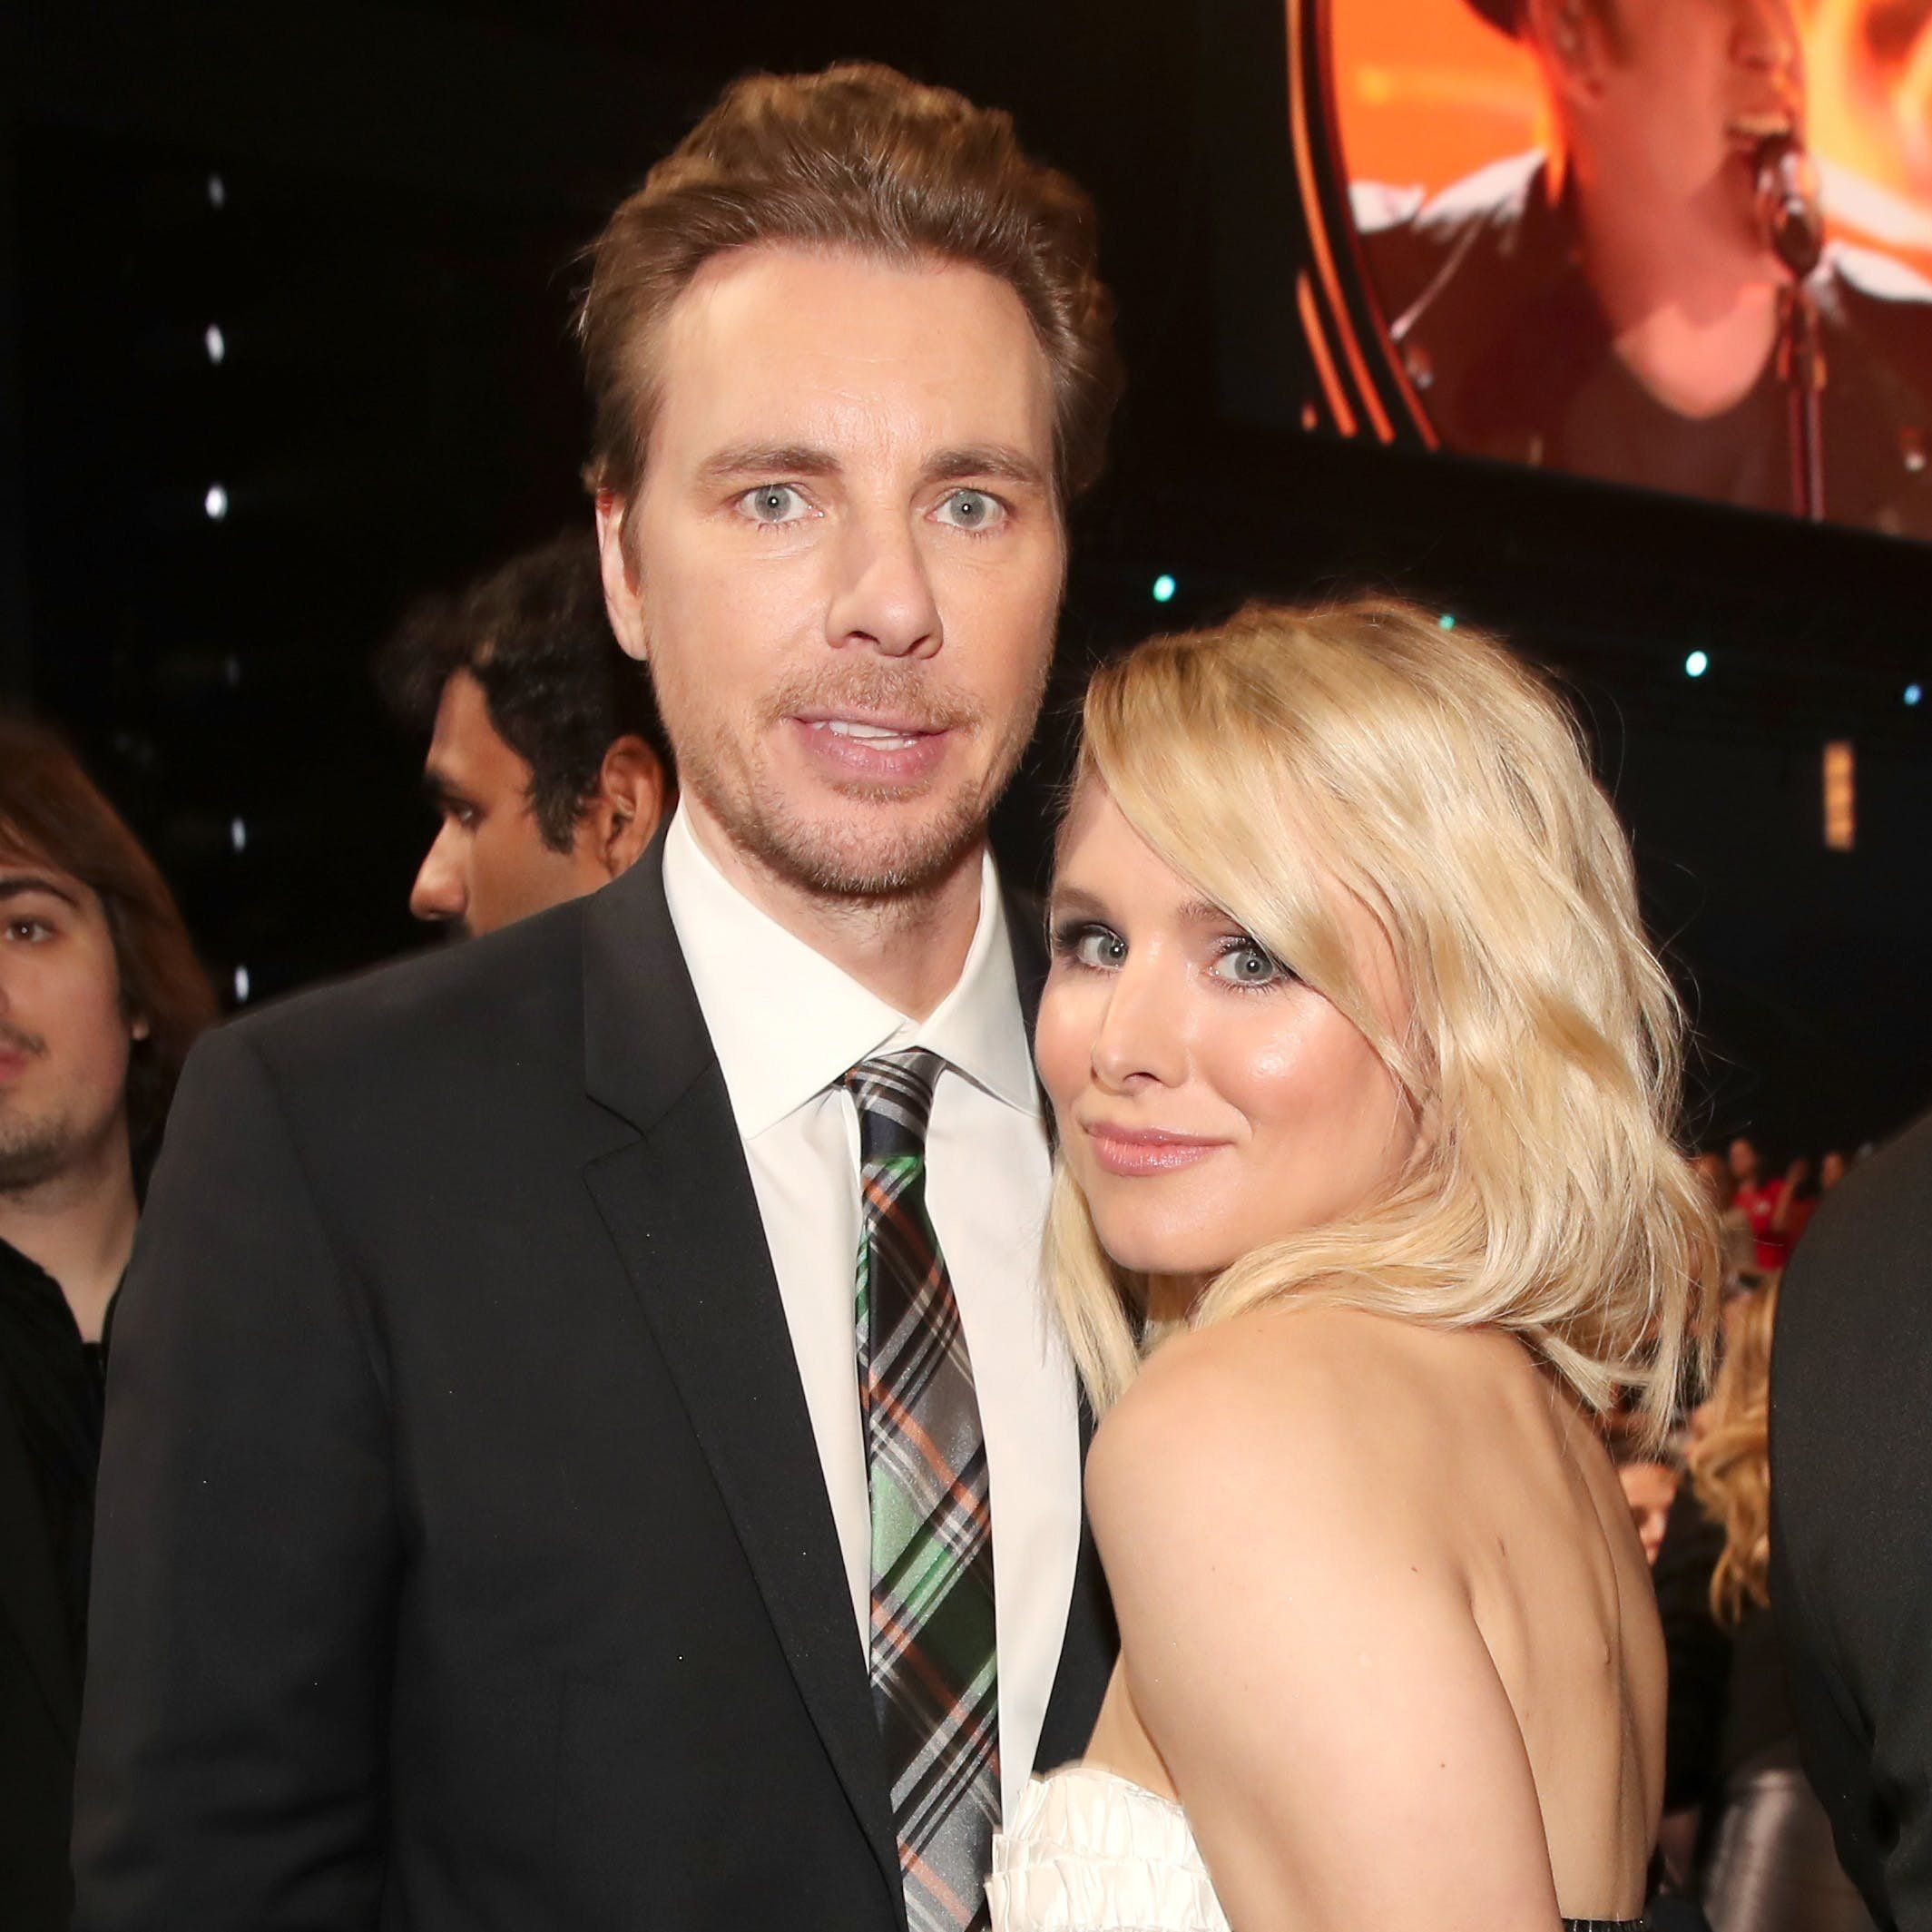 """<div><img width=""""645"""" height=""""382"""" alt=""""""""/></div>""""You set an excellent example of being human.""""<div><p><a rel=""""nofollow"""" href=""""https://www.brit.co/kristen-bell-dax-shepard-sobriety-birthday/?utm_source=rss&utm_medium=rss&utm_campaign=kristen-bell-dax-shepard-sobriety-birthday""""> Read More...</a></p></div>"""